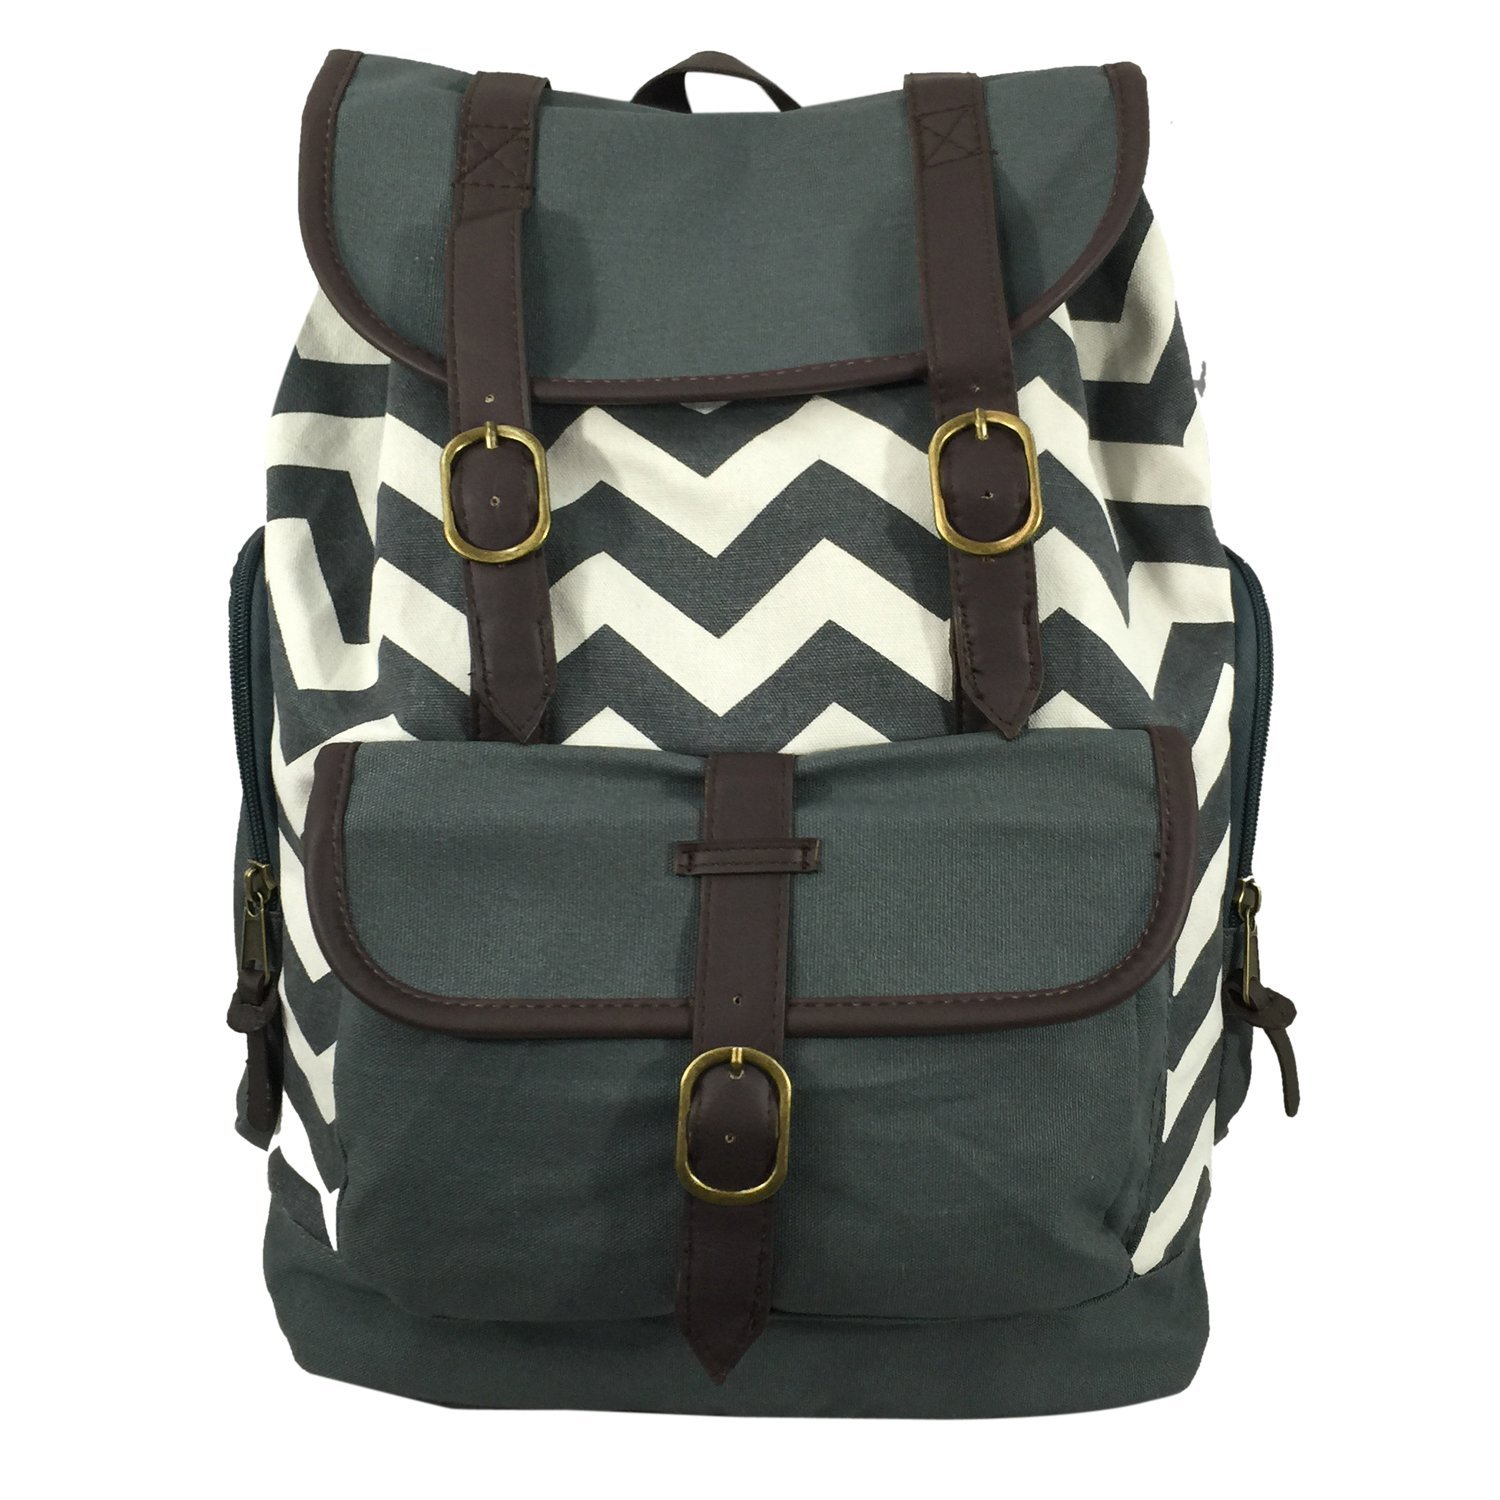 K-Cliffs Printed Canvas Laptop Book Bag Cotton Daypack Vintage Casual Laptop Backpack College Student School Bag Canvas Backpack Fits 15.6'' Chromebook iPad Travel Bag, Chevron